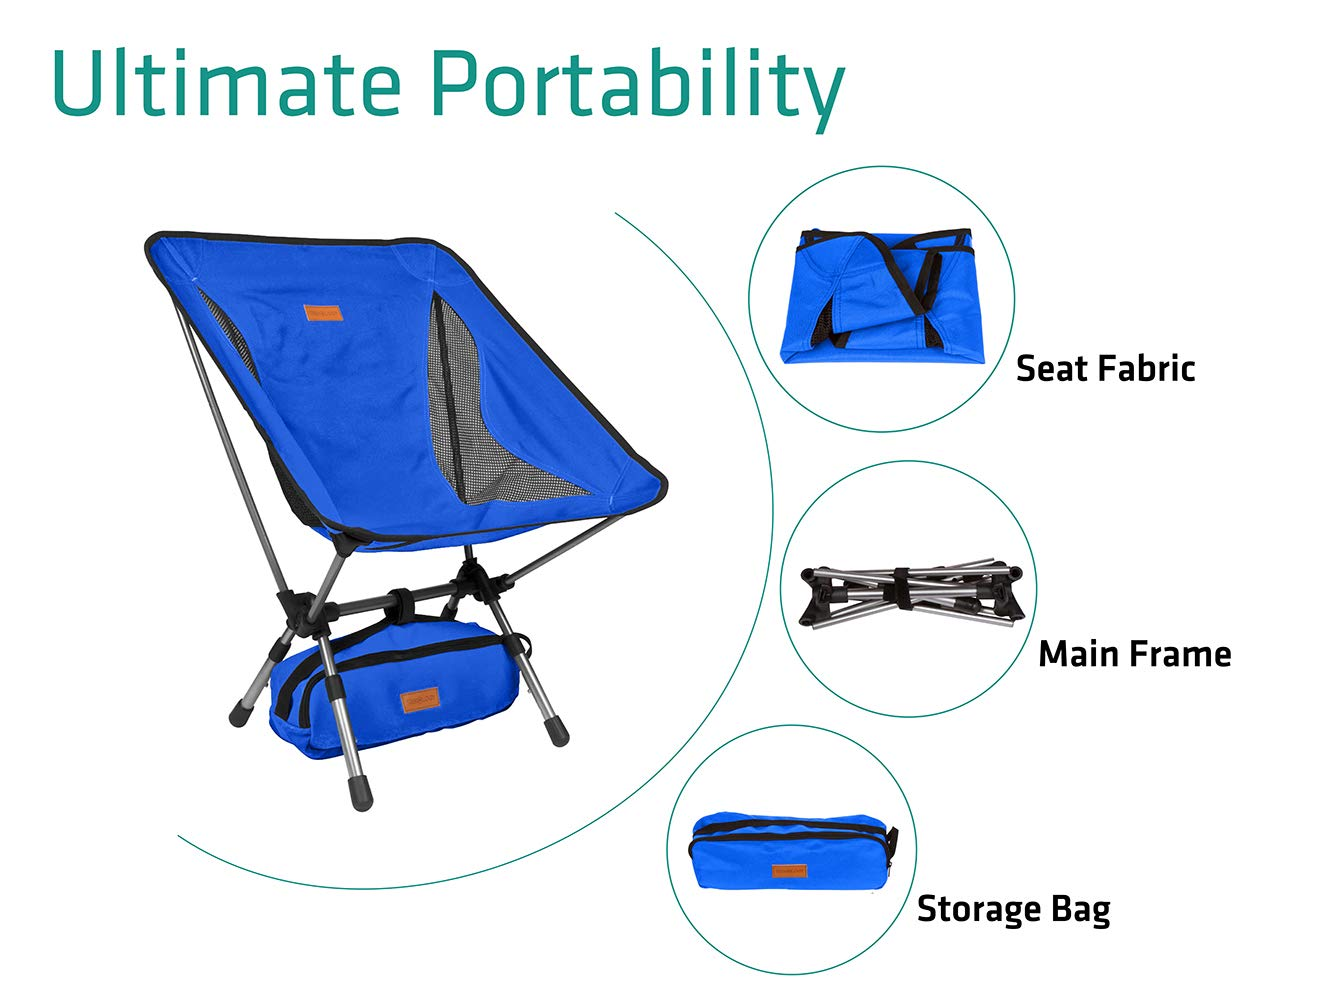 Camp Compact Ultralight Folding Backpacking Chairs Hiking Picnic Small Collapsible Foldable Packable Lightweight Backpack Chair in a Bag for Outdoor Trekology YIZI GO Portable Camping Chair